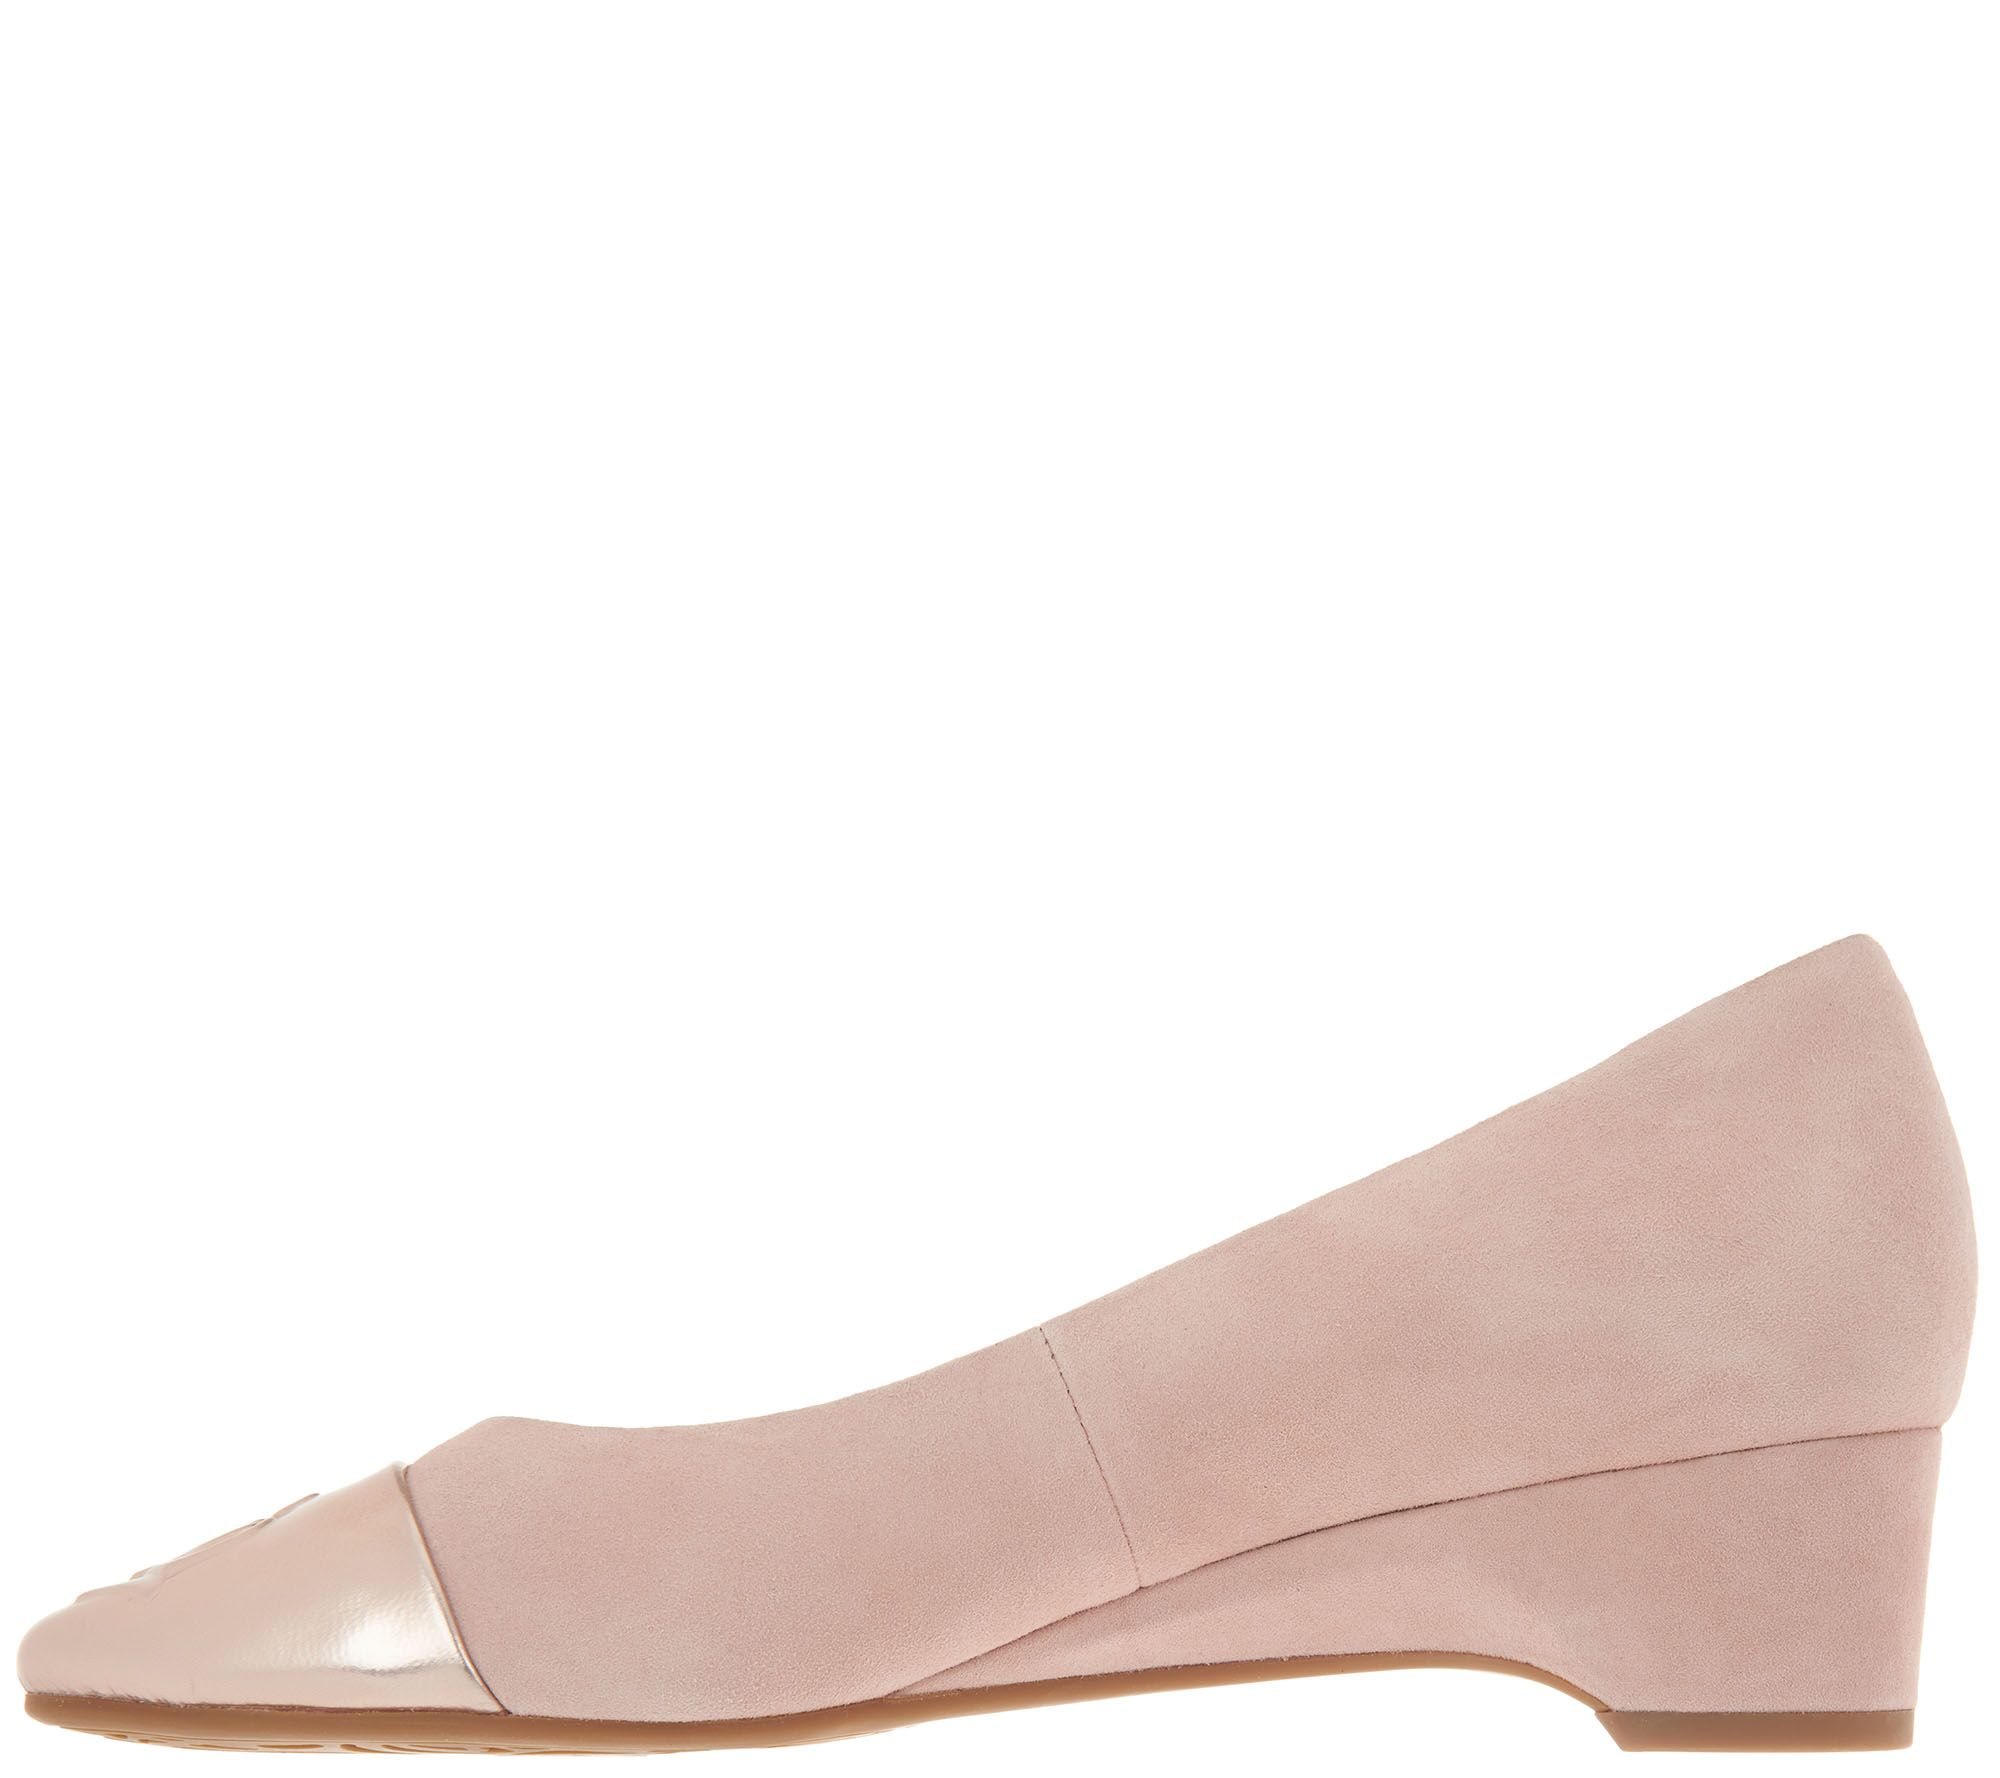 d705f8c38148 Taryn Rose Suede Wedge Pumps - Babe - Page 1 — QVC.com